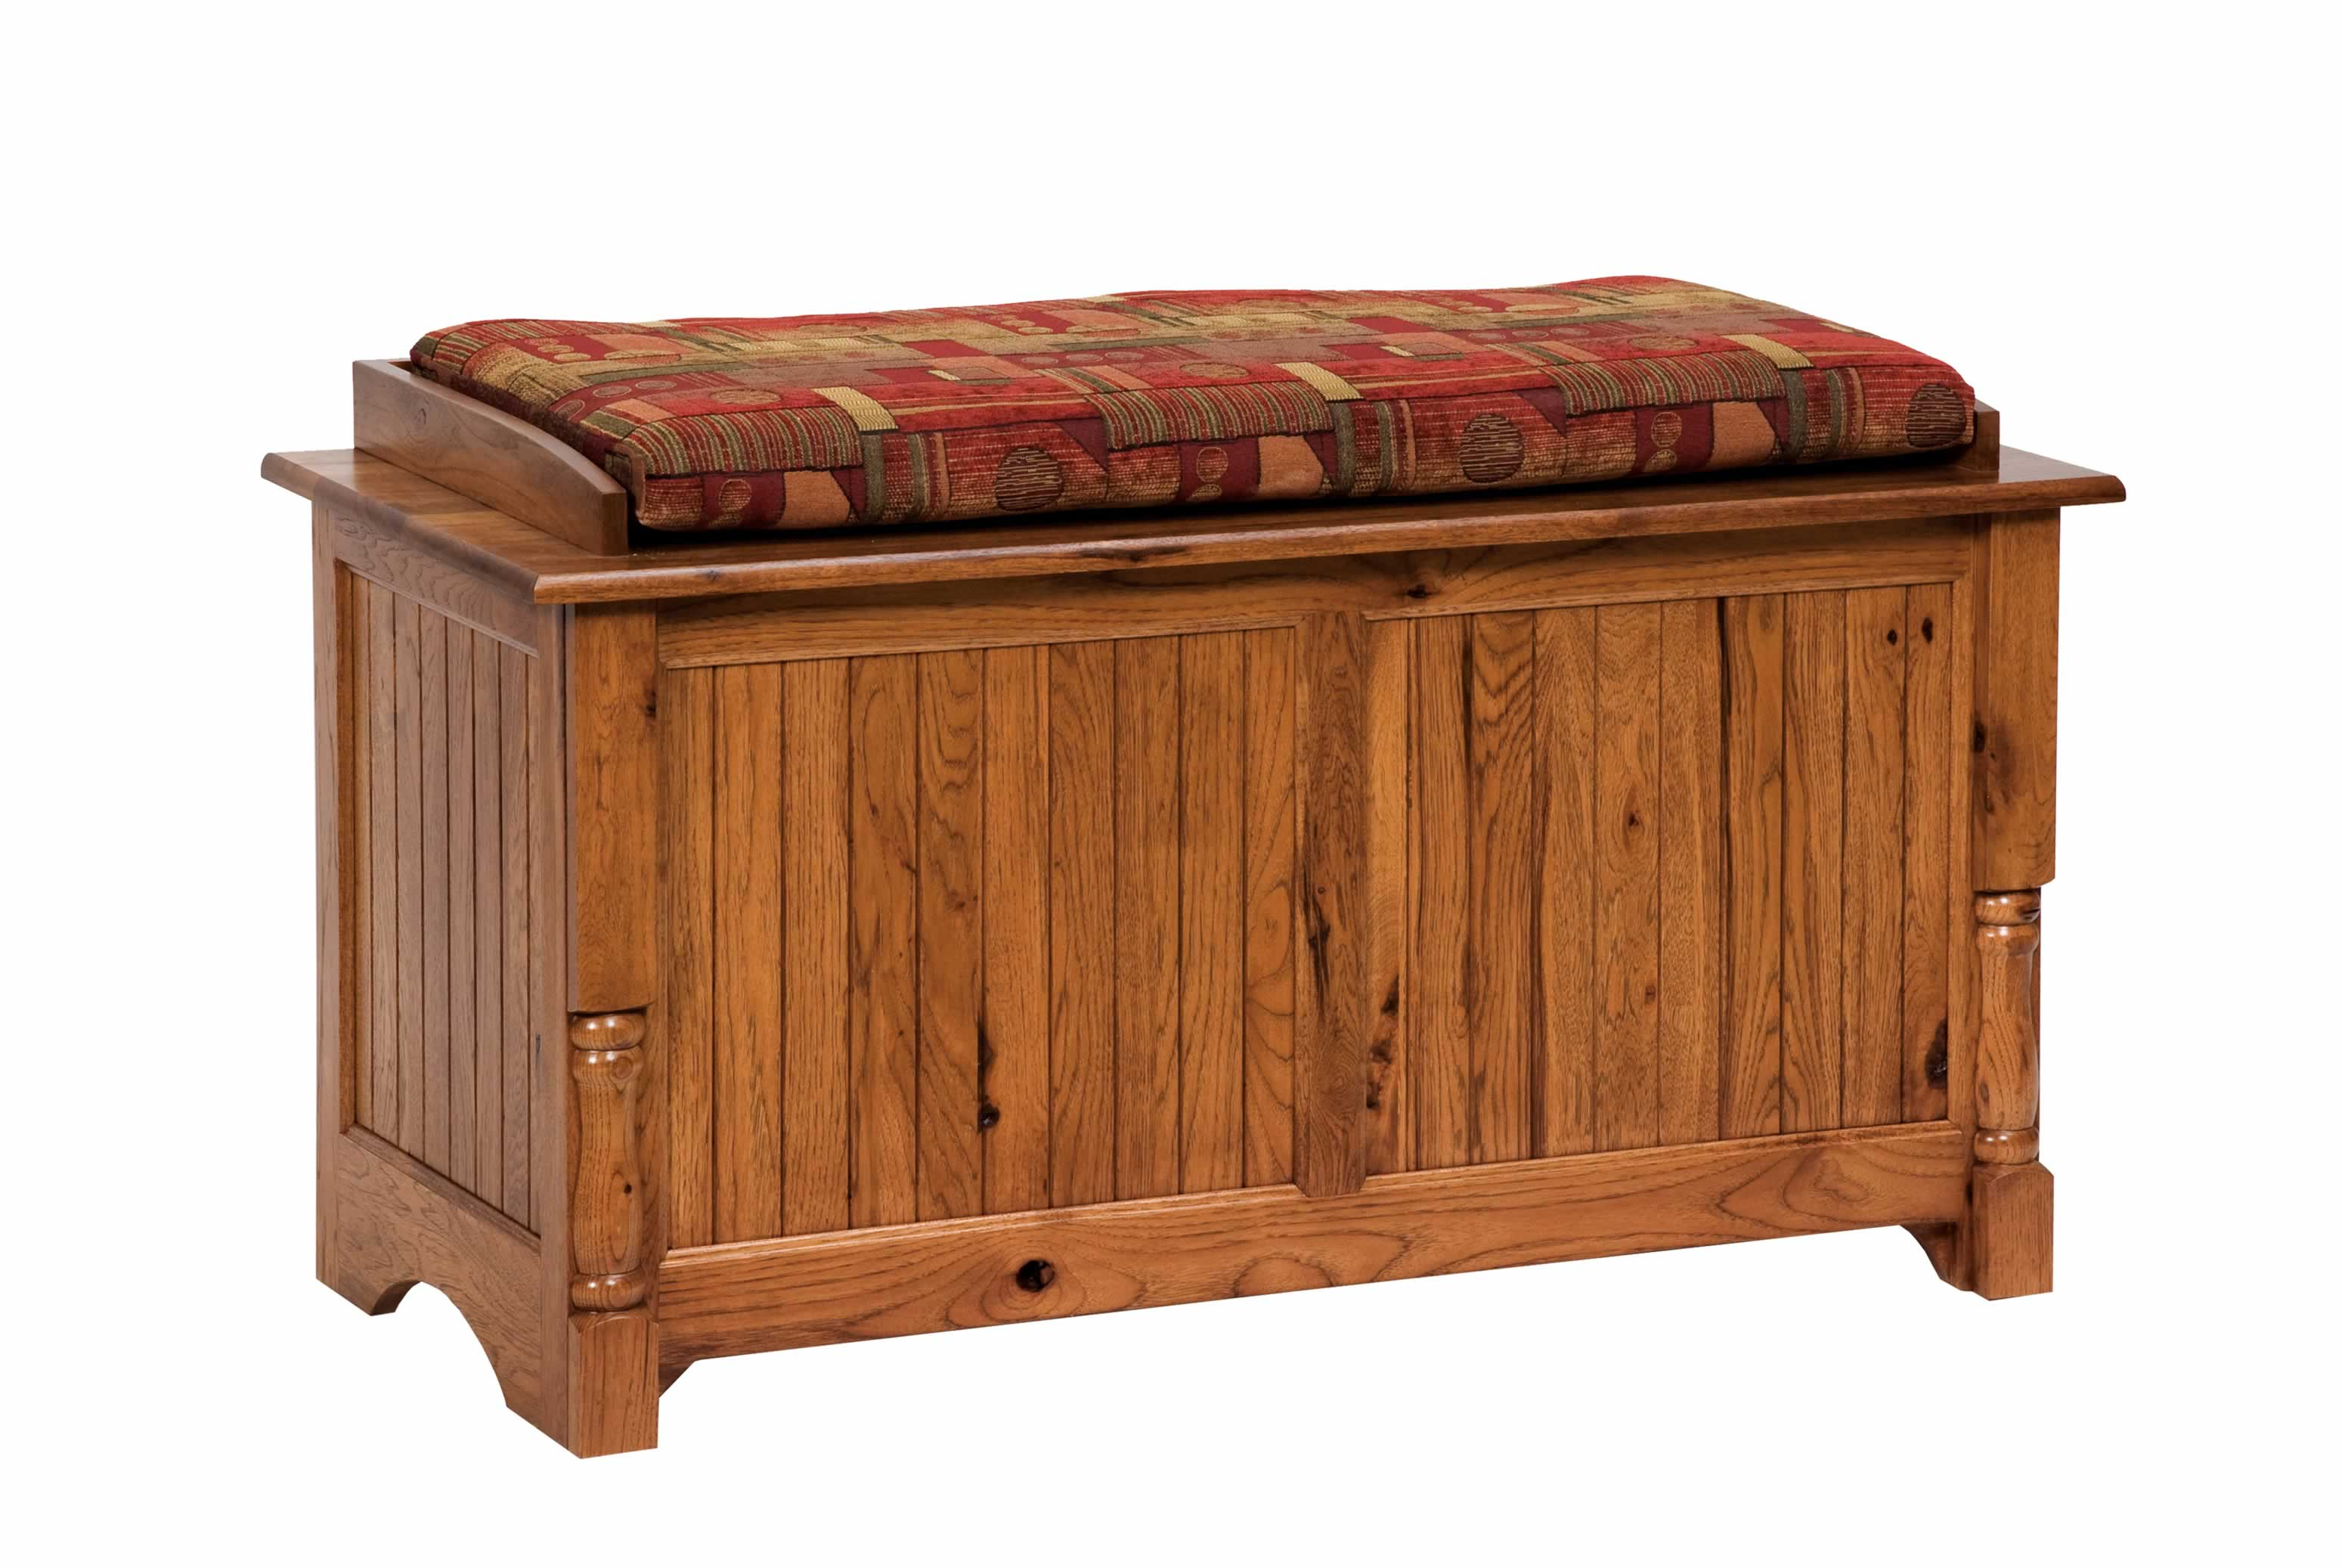 Palisade Blanket Chest - Heartland Amish Furniture inside Palisade Sideboards (Image 19 of 30)